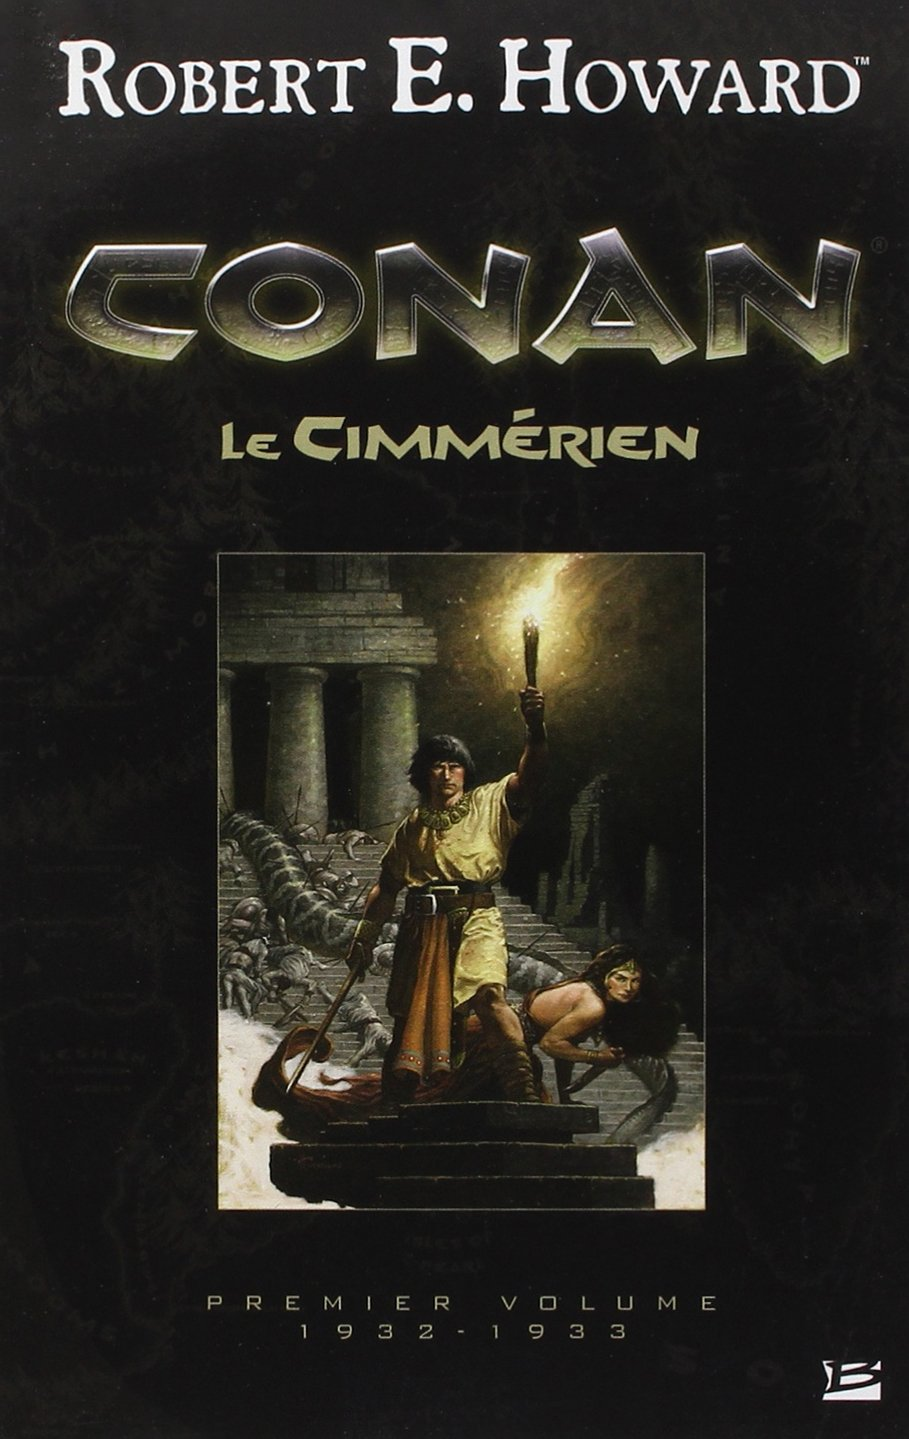 Robert E. Howard - Conan : 8 Livres (Epub)